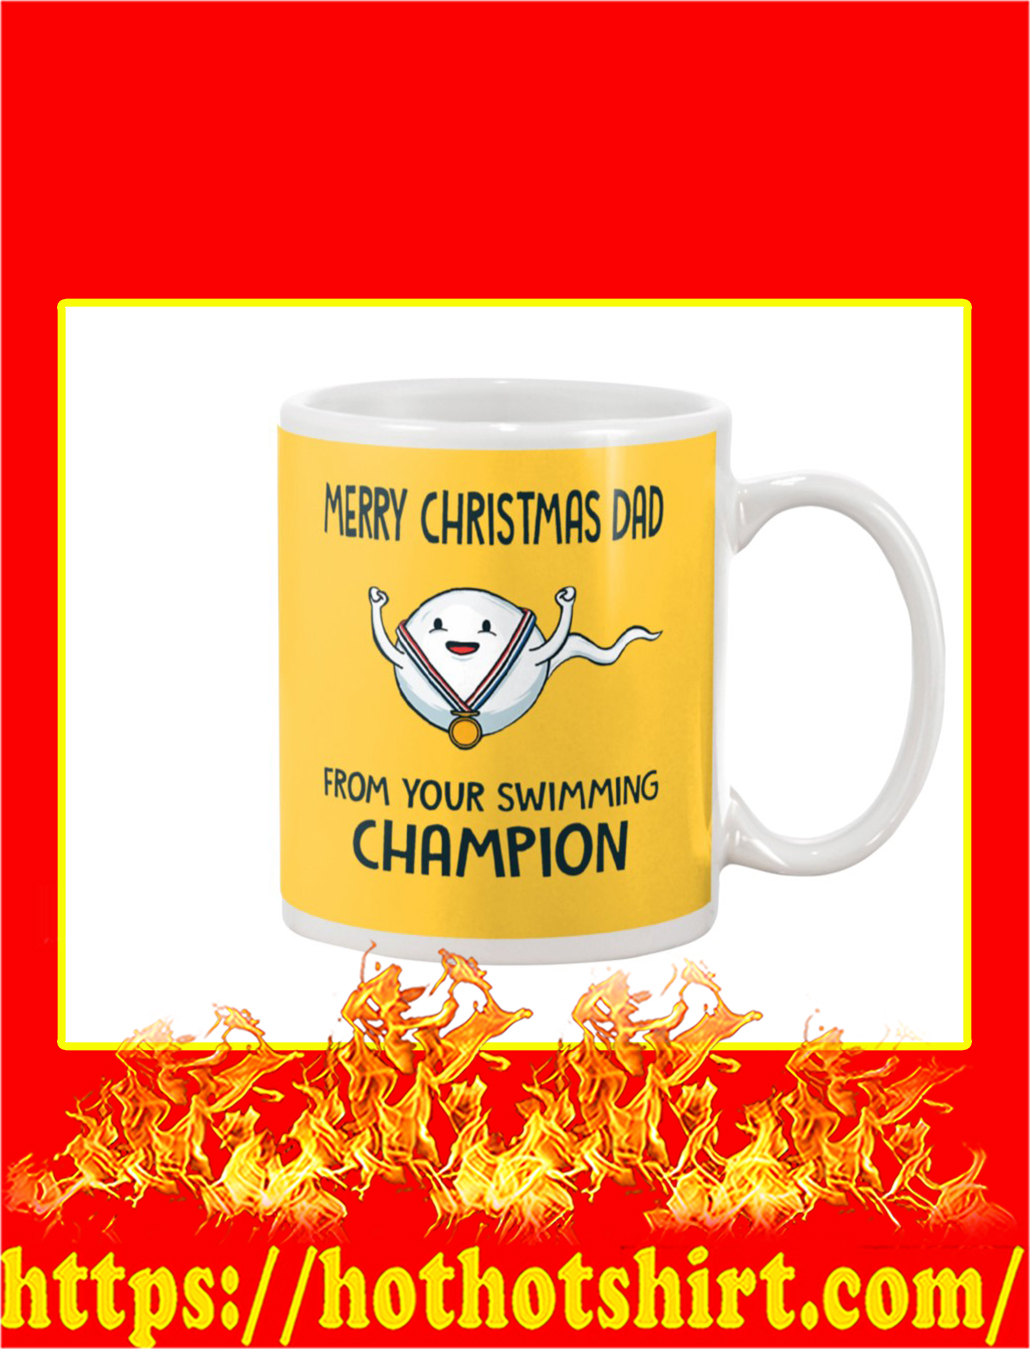 Merry Christmas Dad From Your Swimming Champion Mug- gold